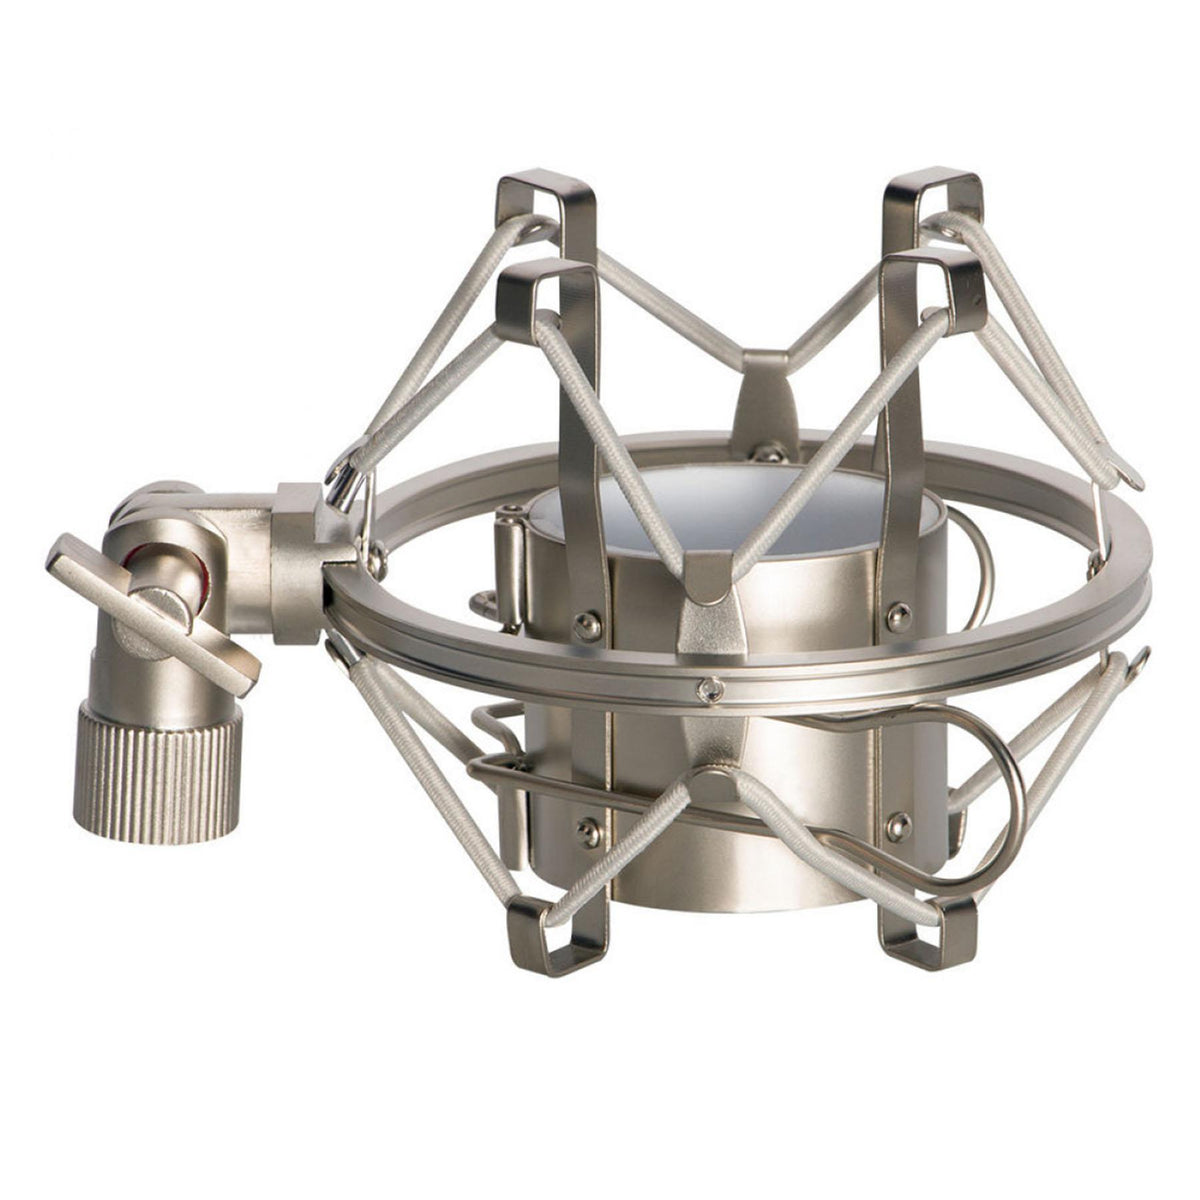 Silver Shock Mount for Neumann TLM 102 Microphone